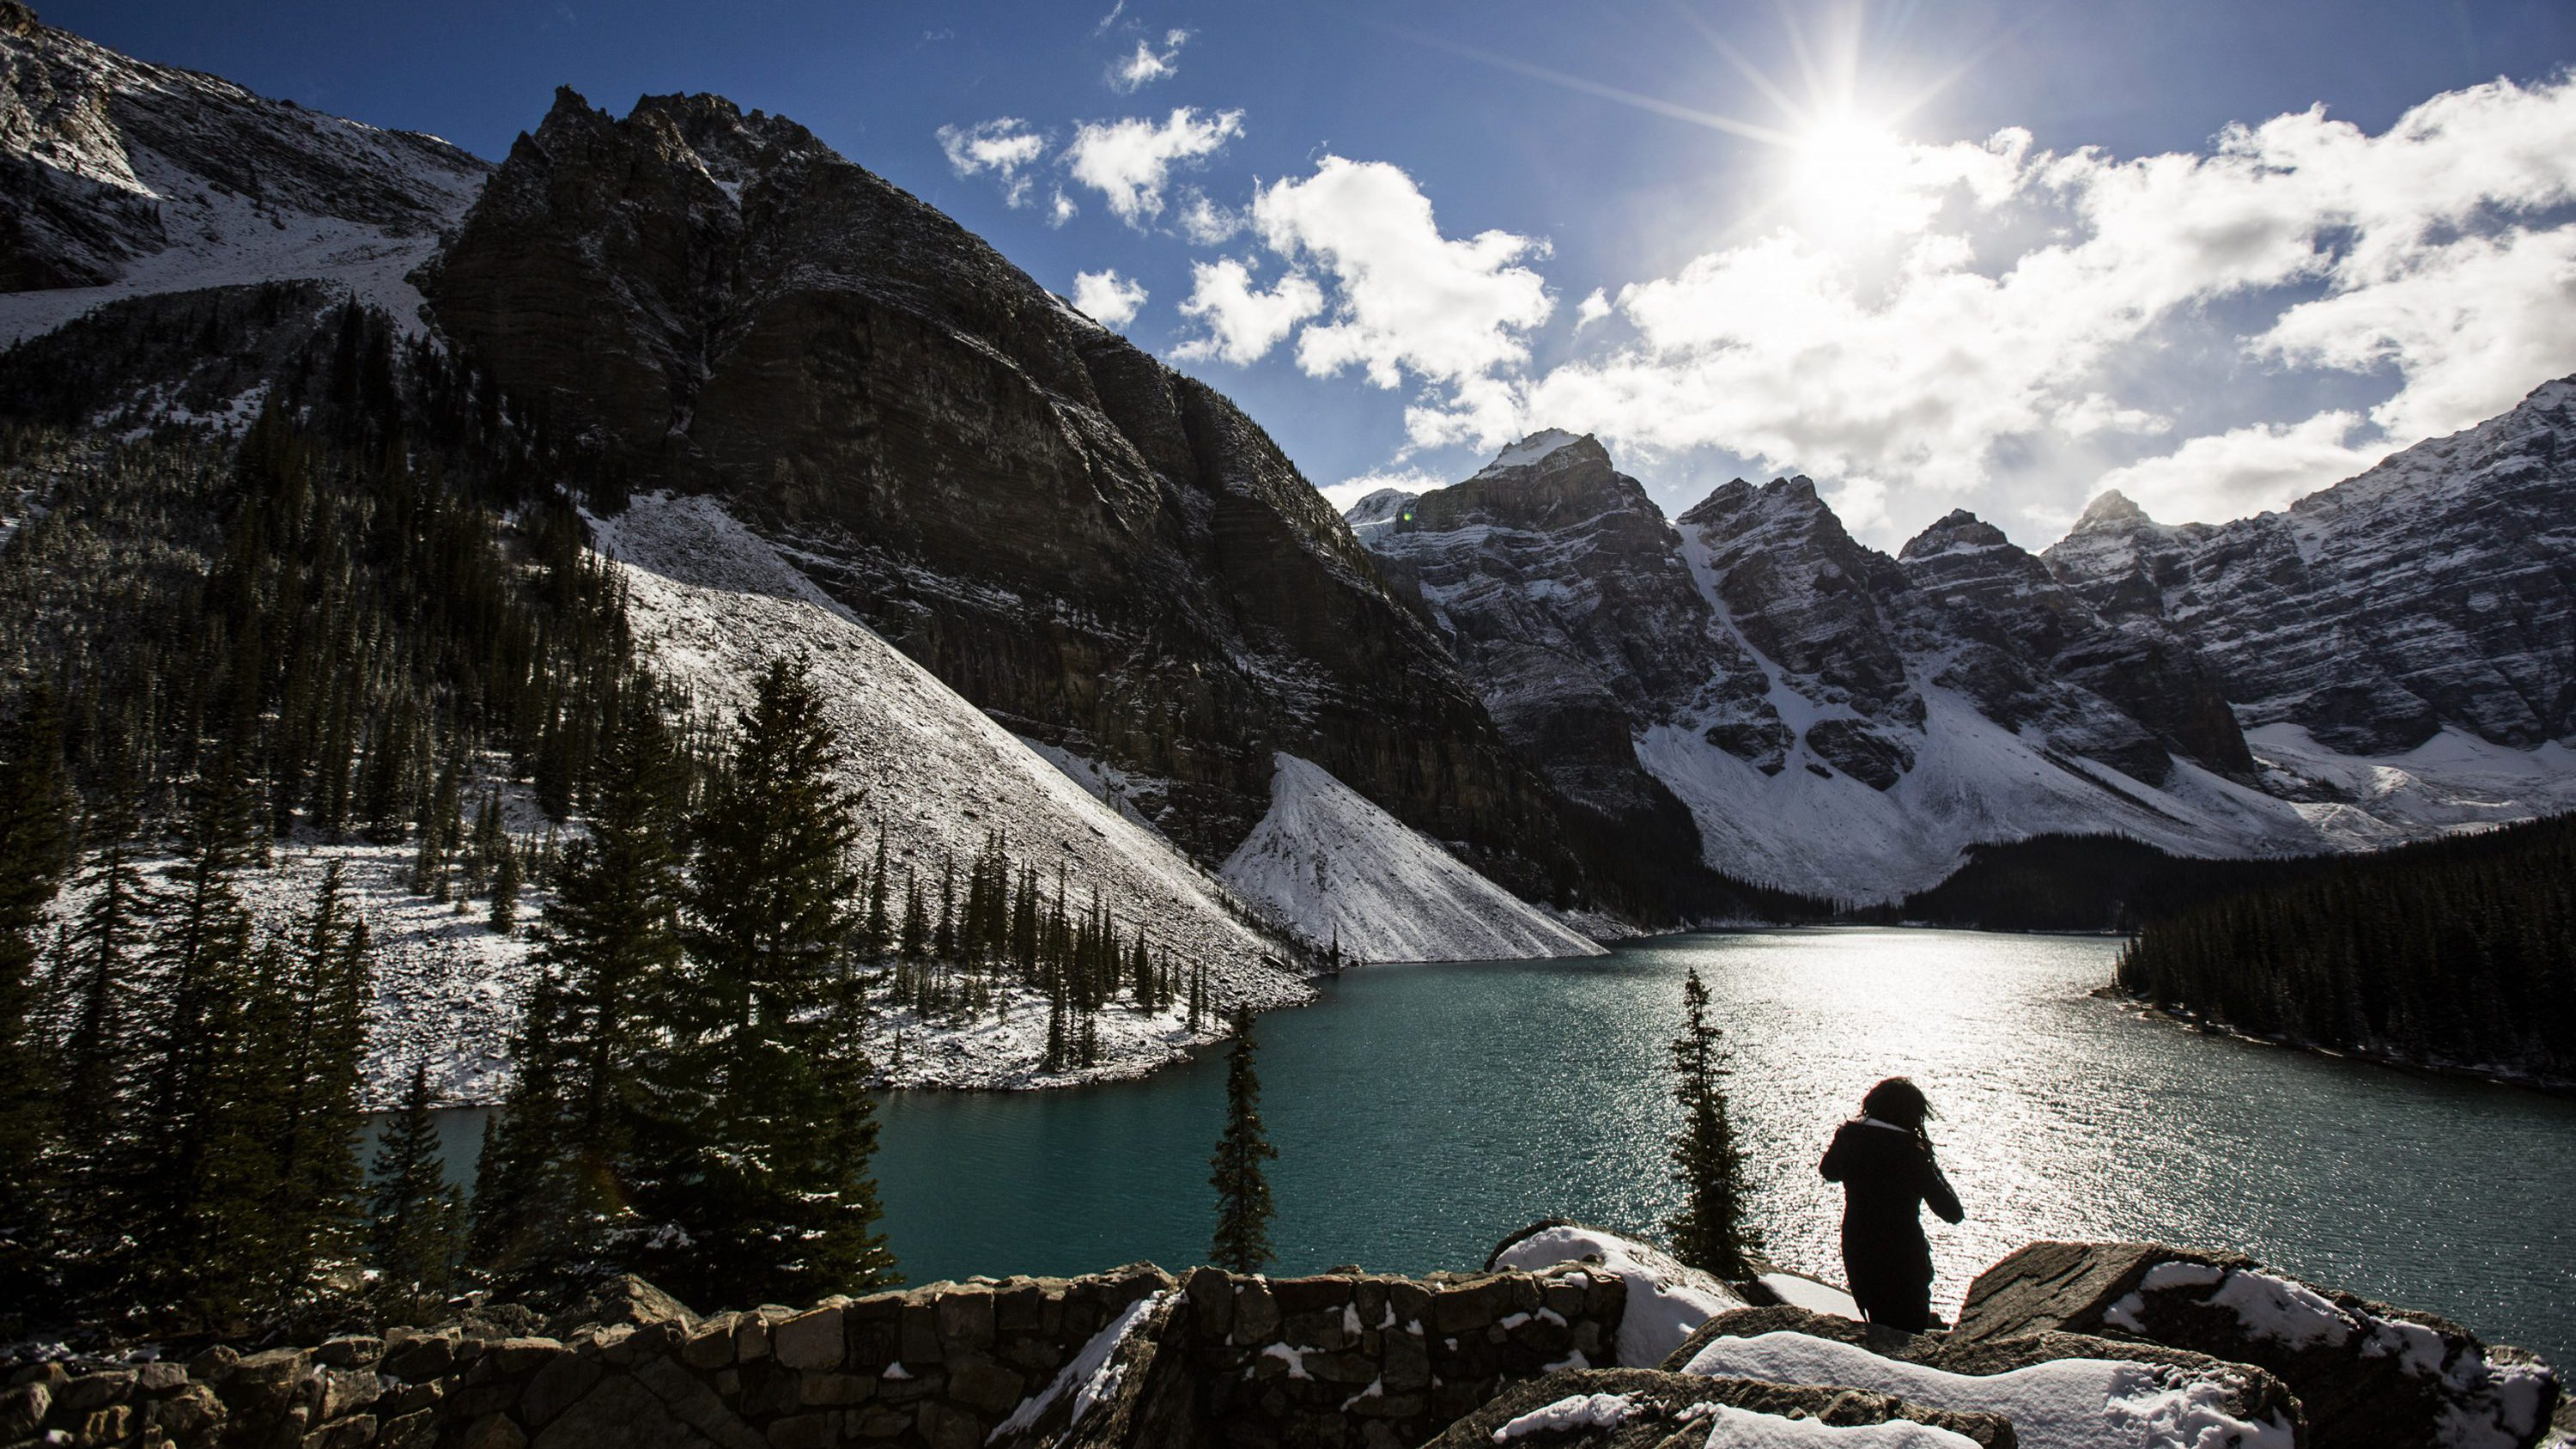 A woman looks over Moraine Lake in Banff National Park, in the Canadian Rocky Mountains outside the village of Lake Louise, Alberta, October 2, 2014.